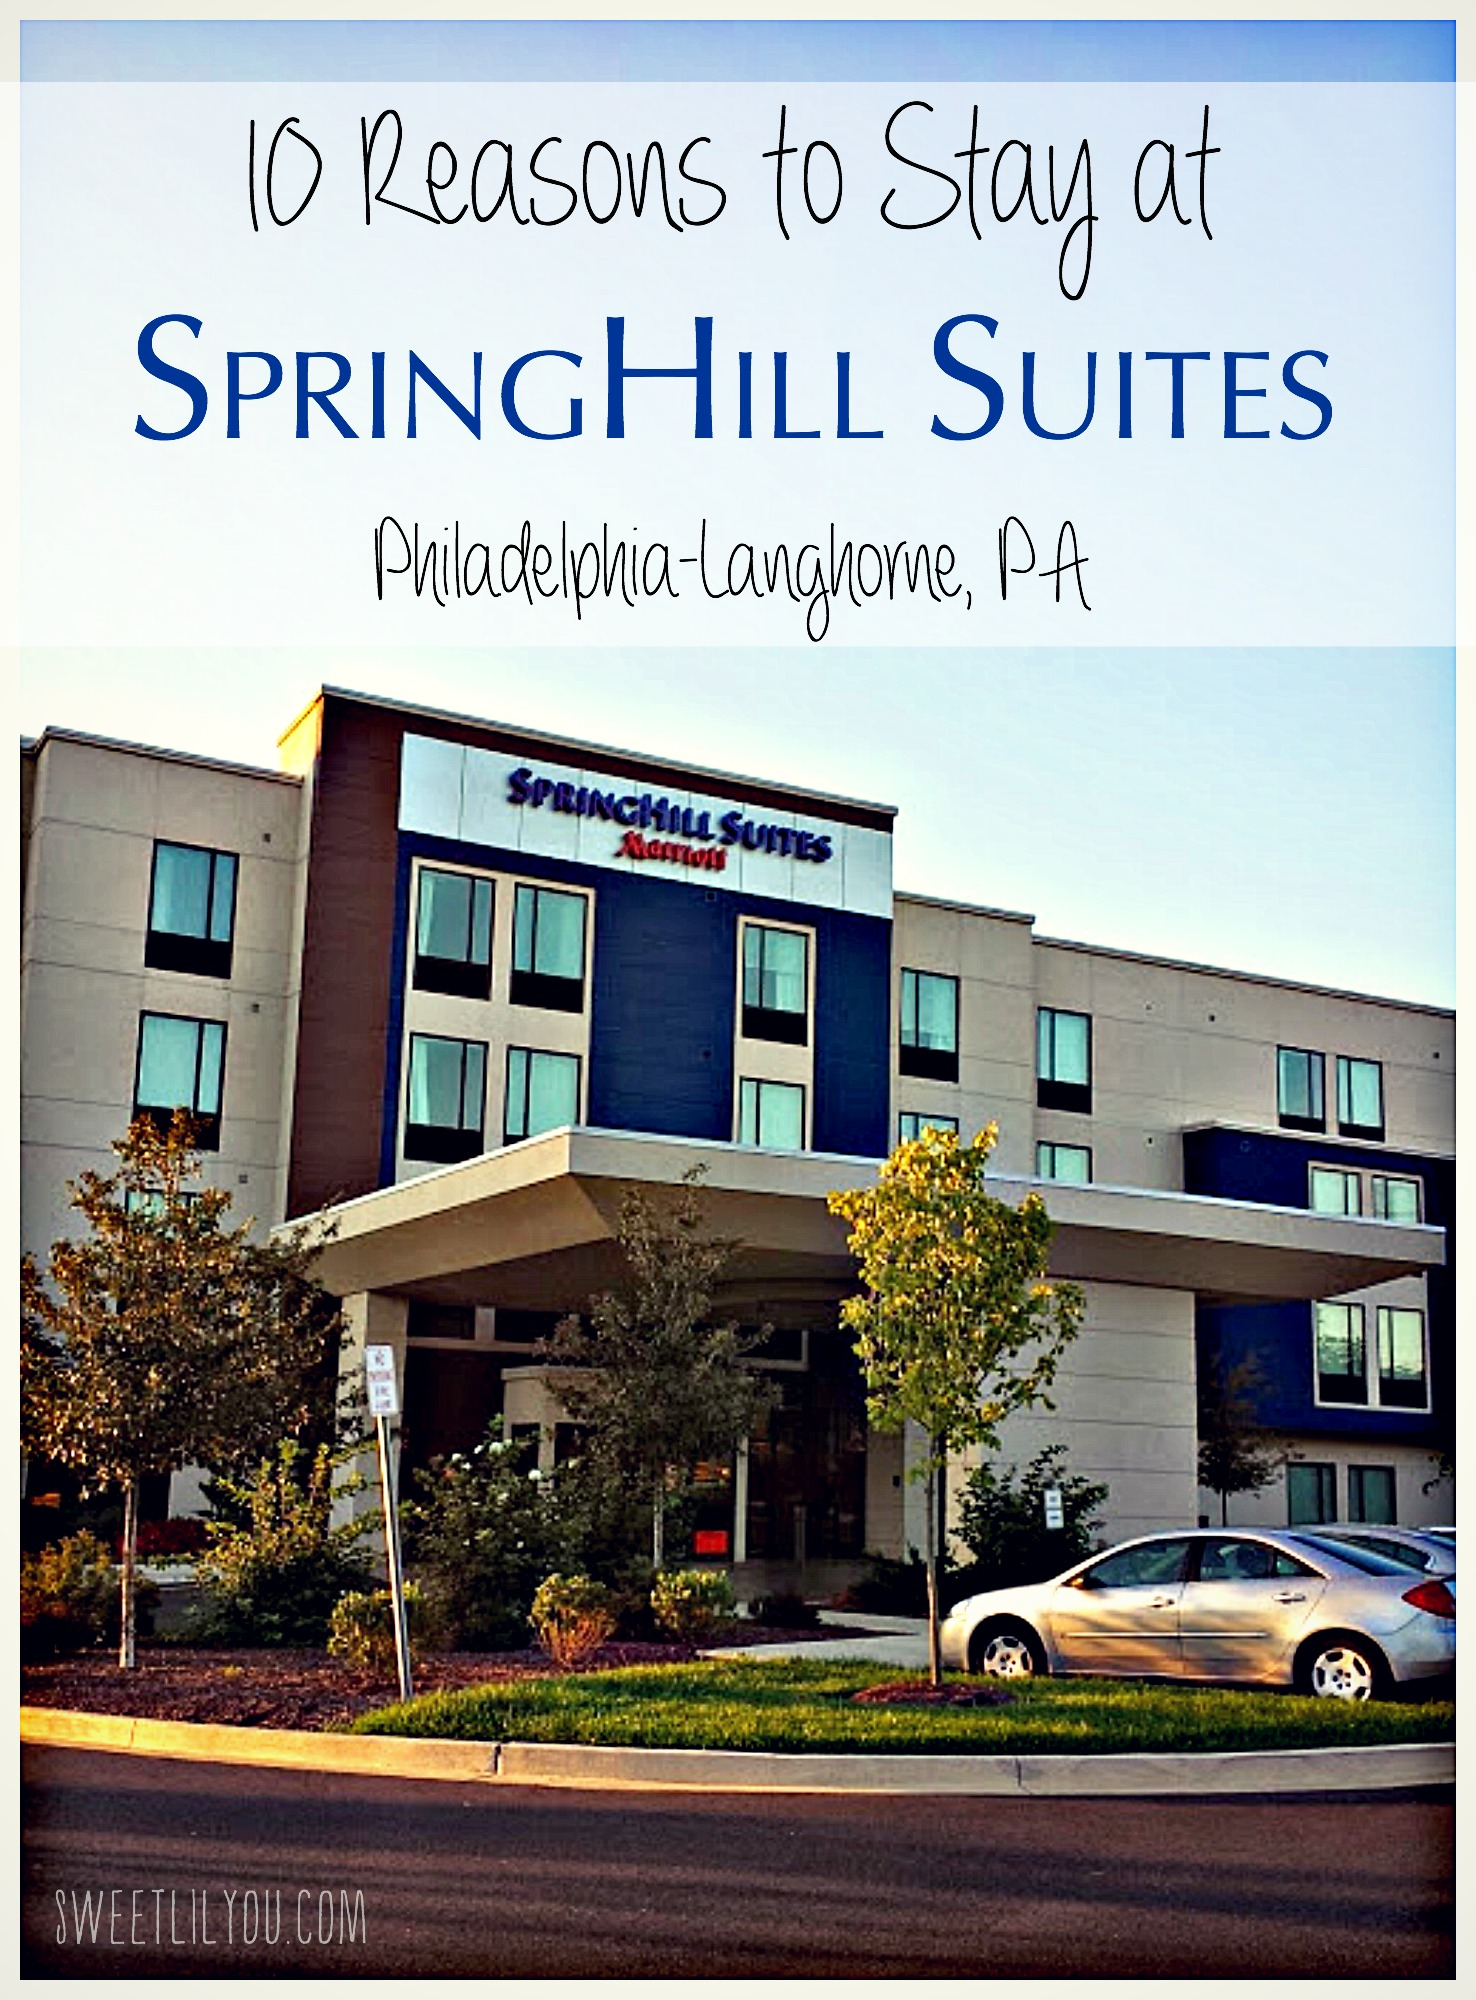 10 Reasons to stay at SpringHill Suites in Langhorne PA